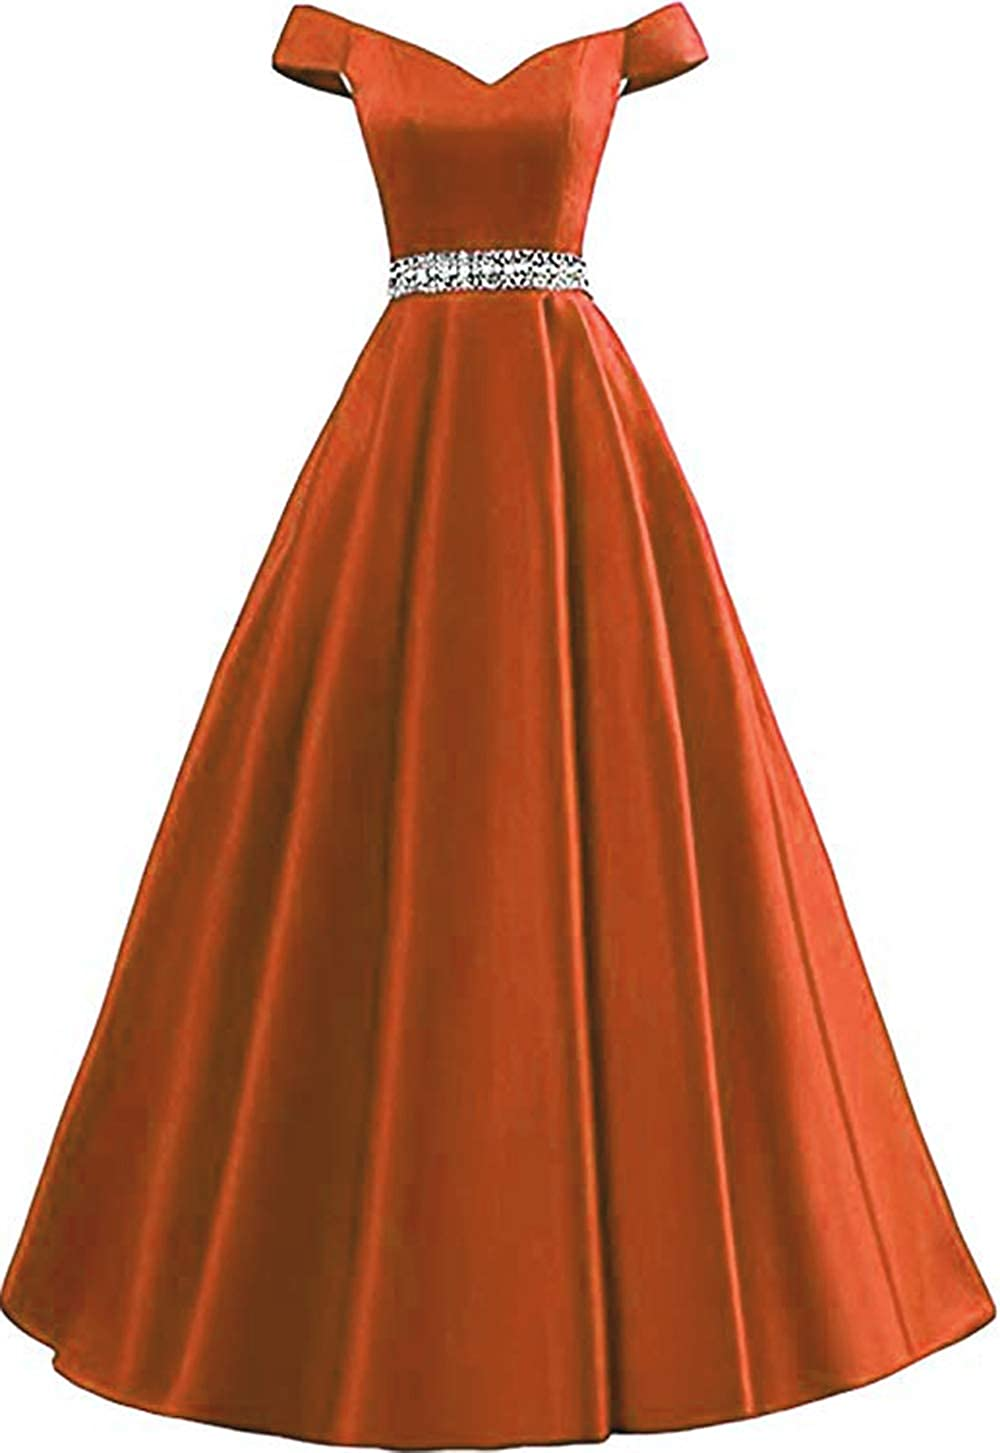 orange Rmaytiked Women's Off Shoulder Prom Dresses Long 2019 Satin Beaded A Line Formal Evening Ball Gowns with Pockets